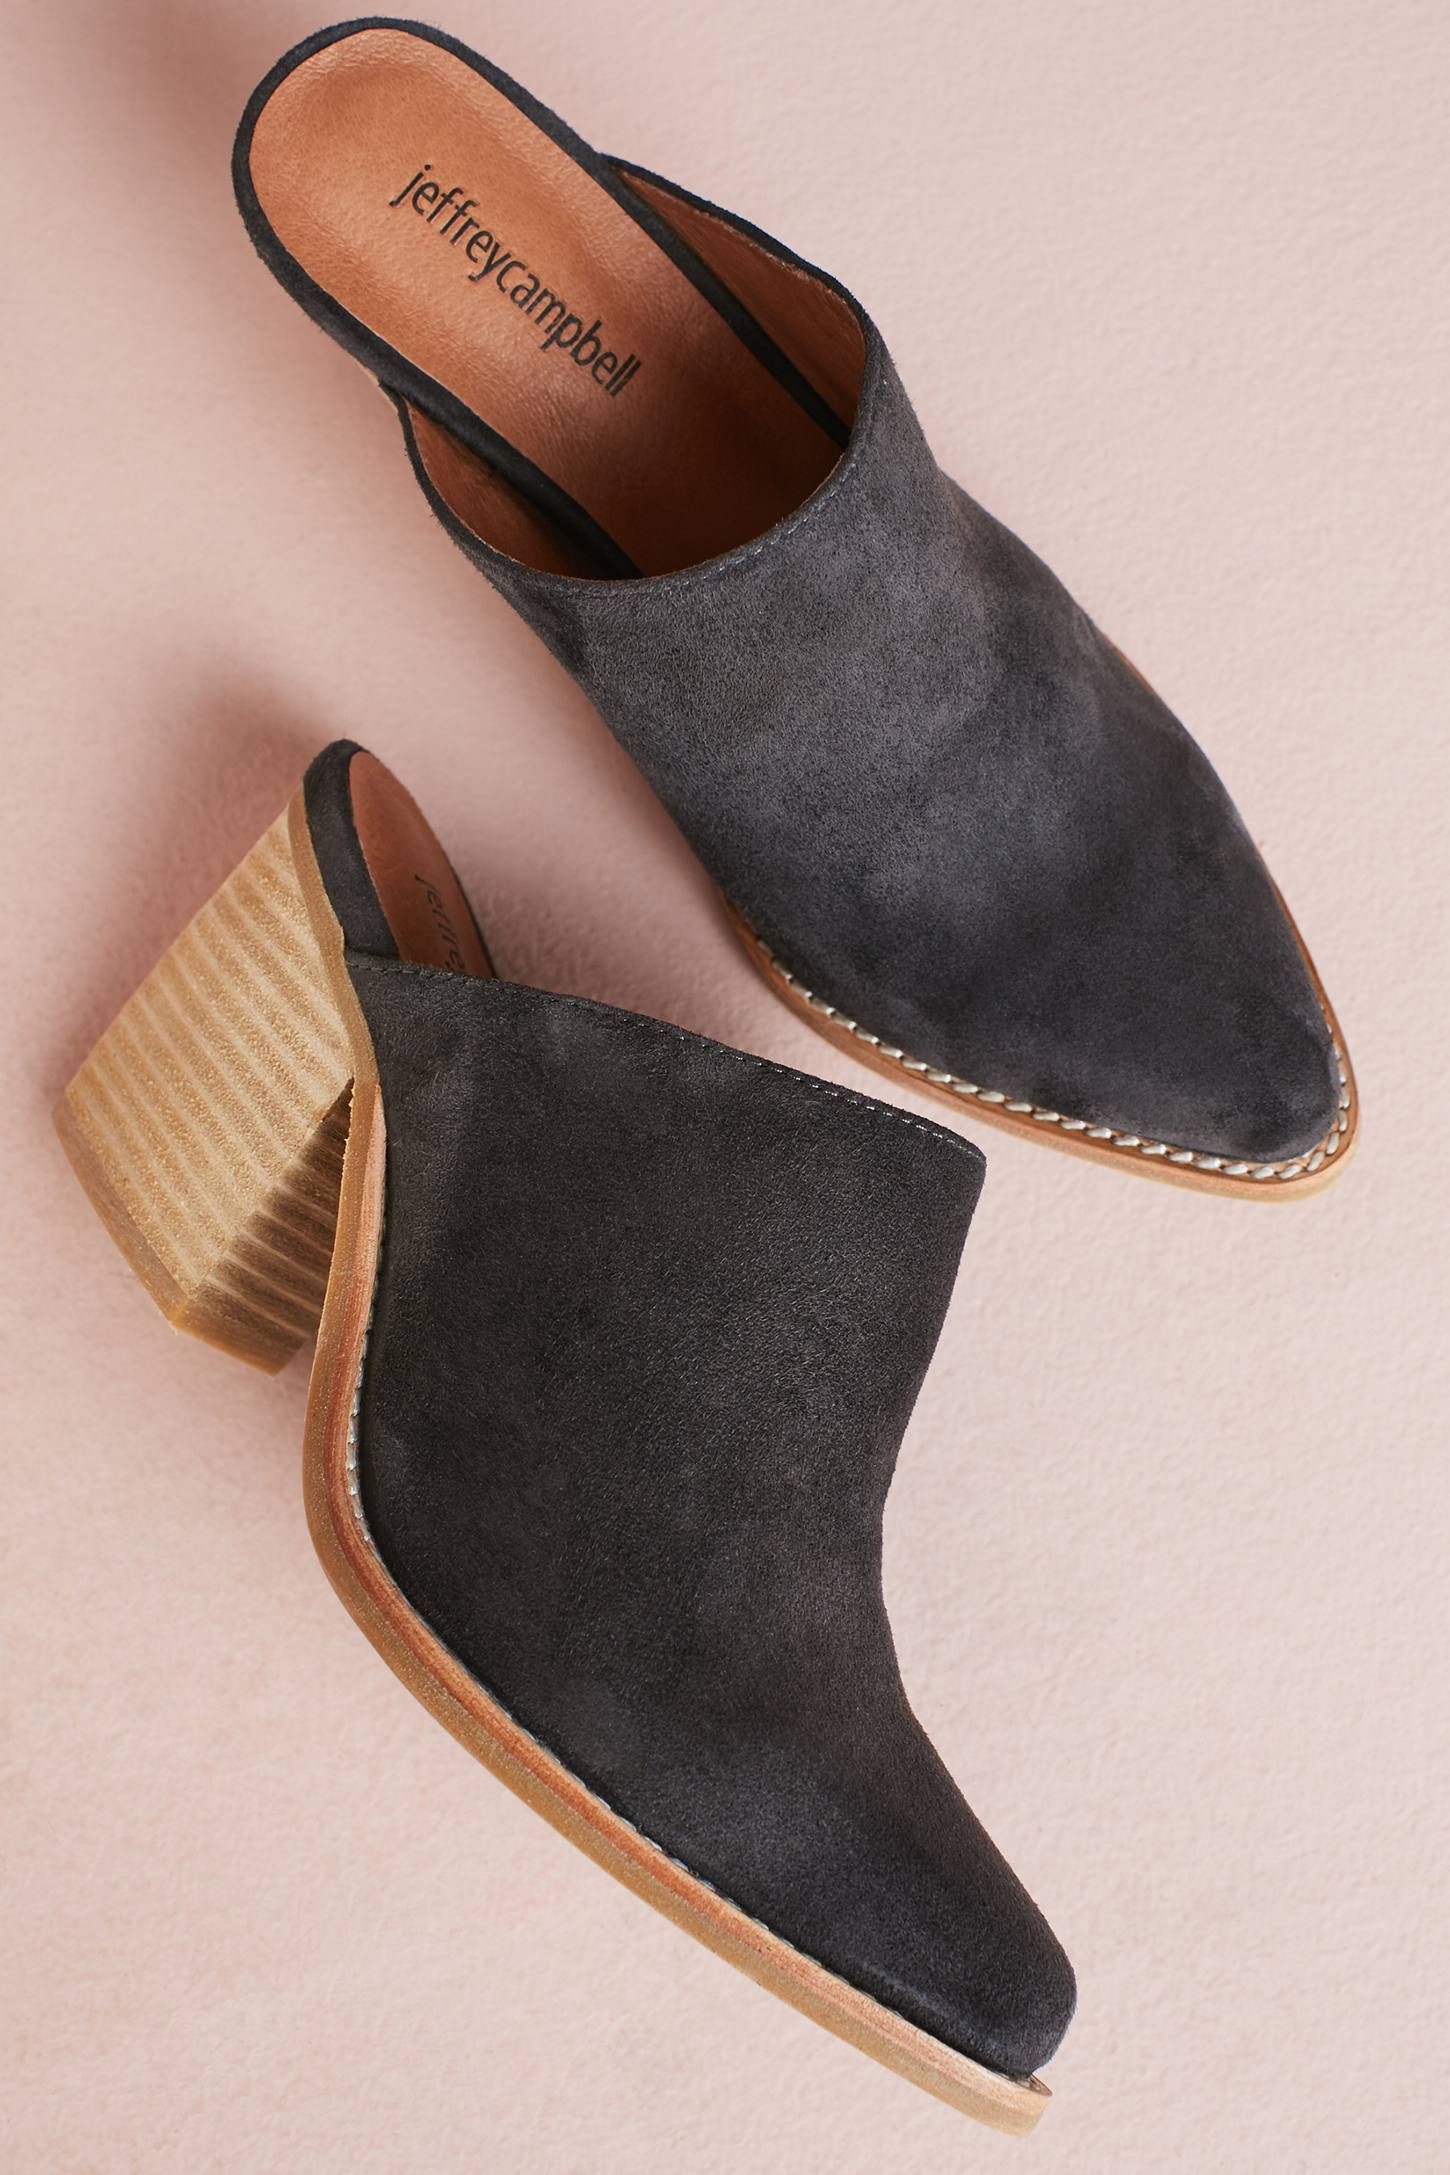 736e6881375 Shop the Jeffrey Campbell Favela Mules and more Anthropologie at  Anthropologie today. Read customer reviews